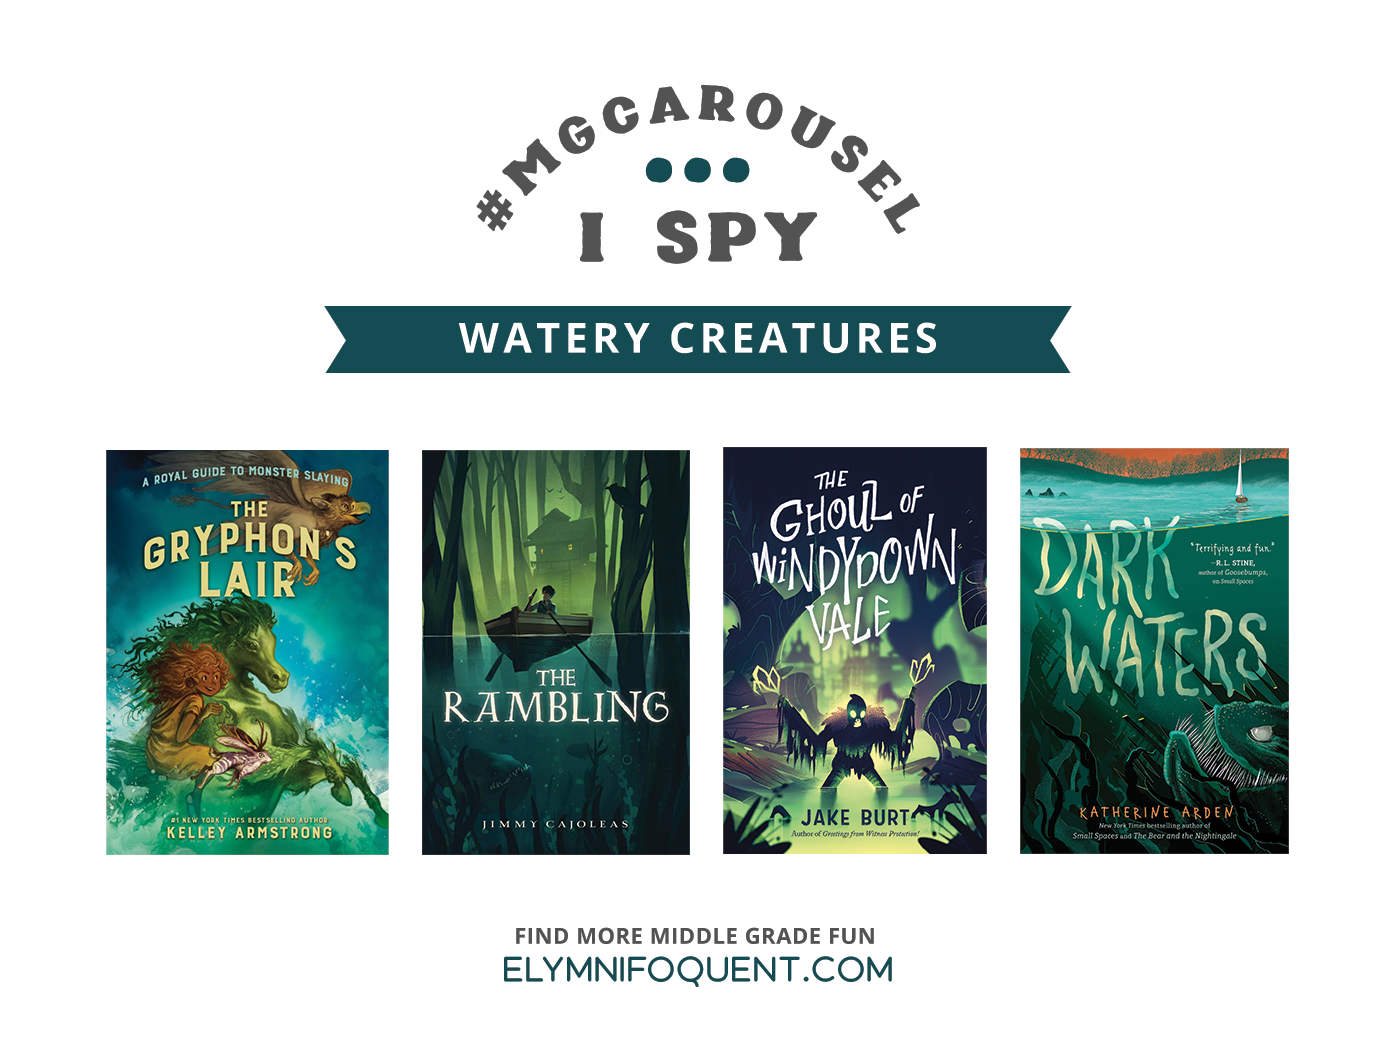 I SPY: Watery Creatures featuring the book covers of THE GRYPHON'S LAIR by Kelley Armstrong; THE RAMBLING by Jimmy Cajoleas; THE GHOUL OF WINDYDOWN VALE by Jake Burt; and DARK WATERS by Katherine Arden.